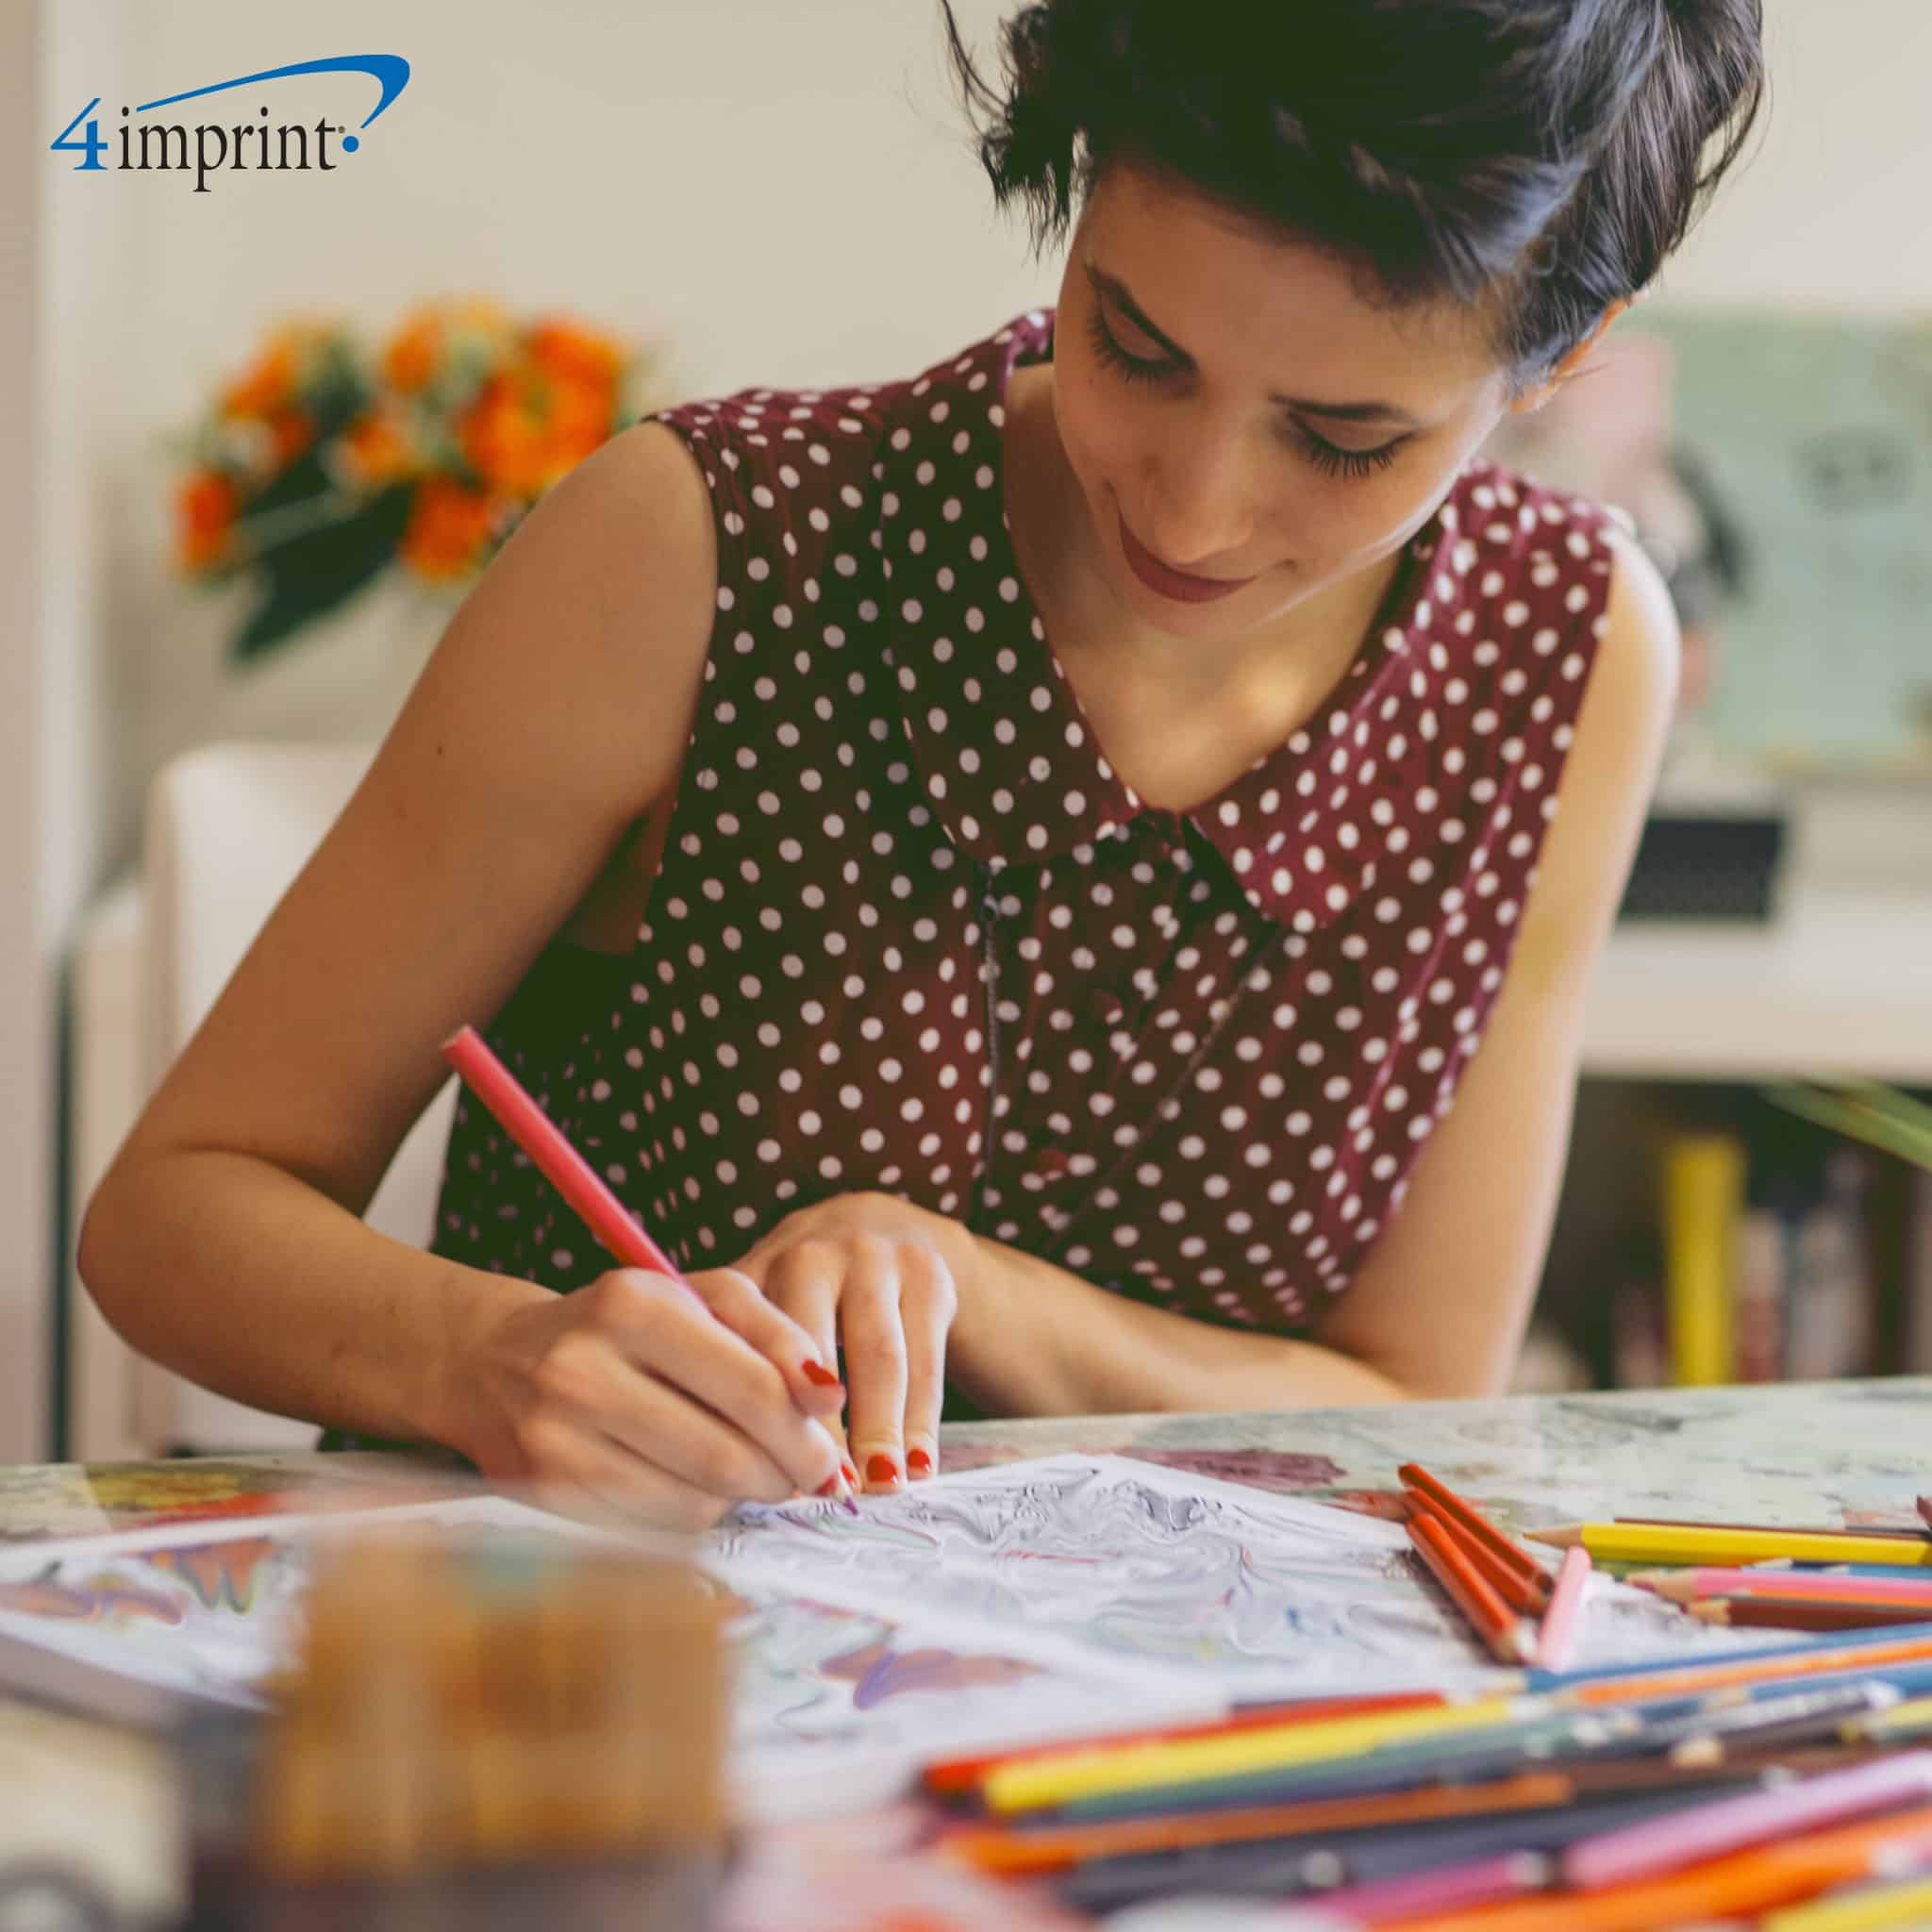 Fight stress with adult coloring books - 4imprint promotional products